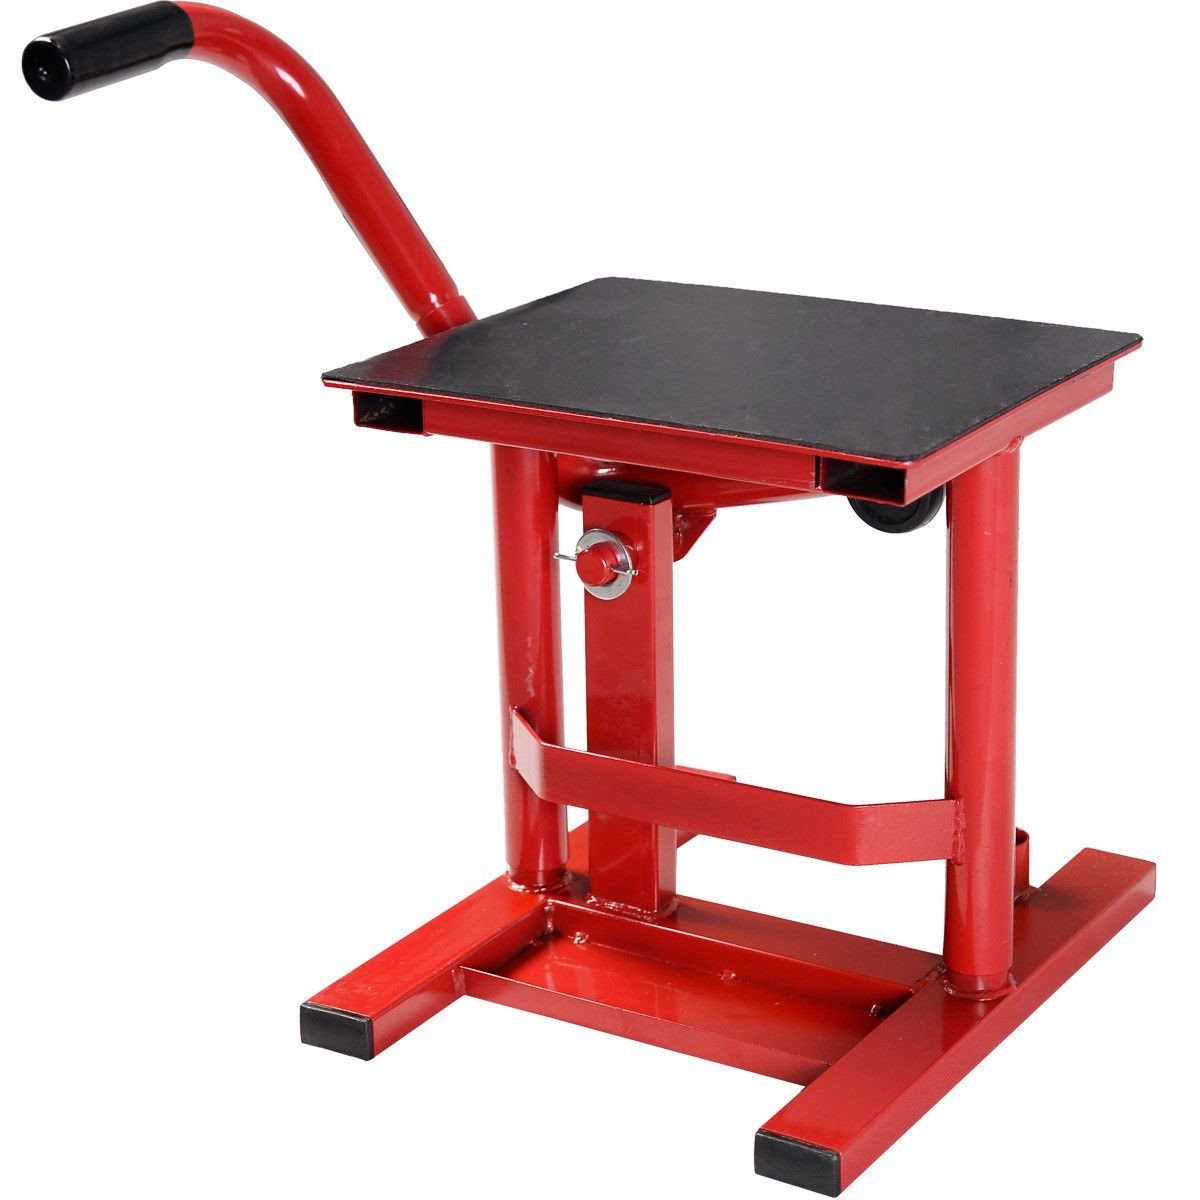 By Choice Products Dirt Bike Motorcycle Maintenance Steel Motocross Racing Adjustable Lift Stand